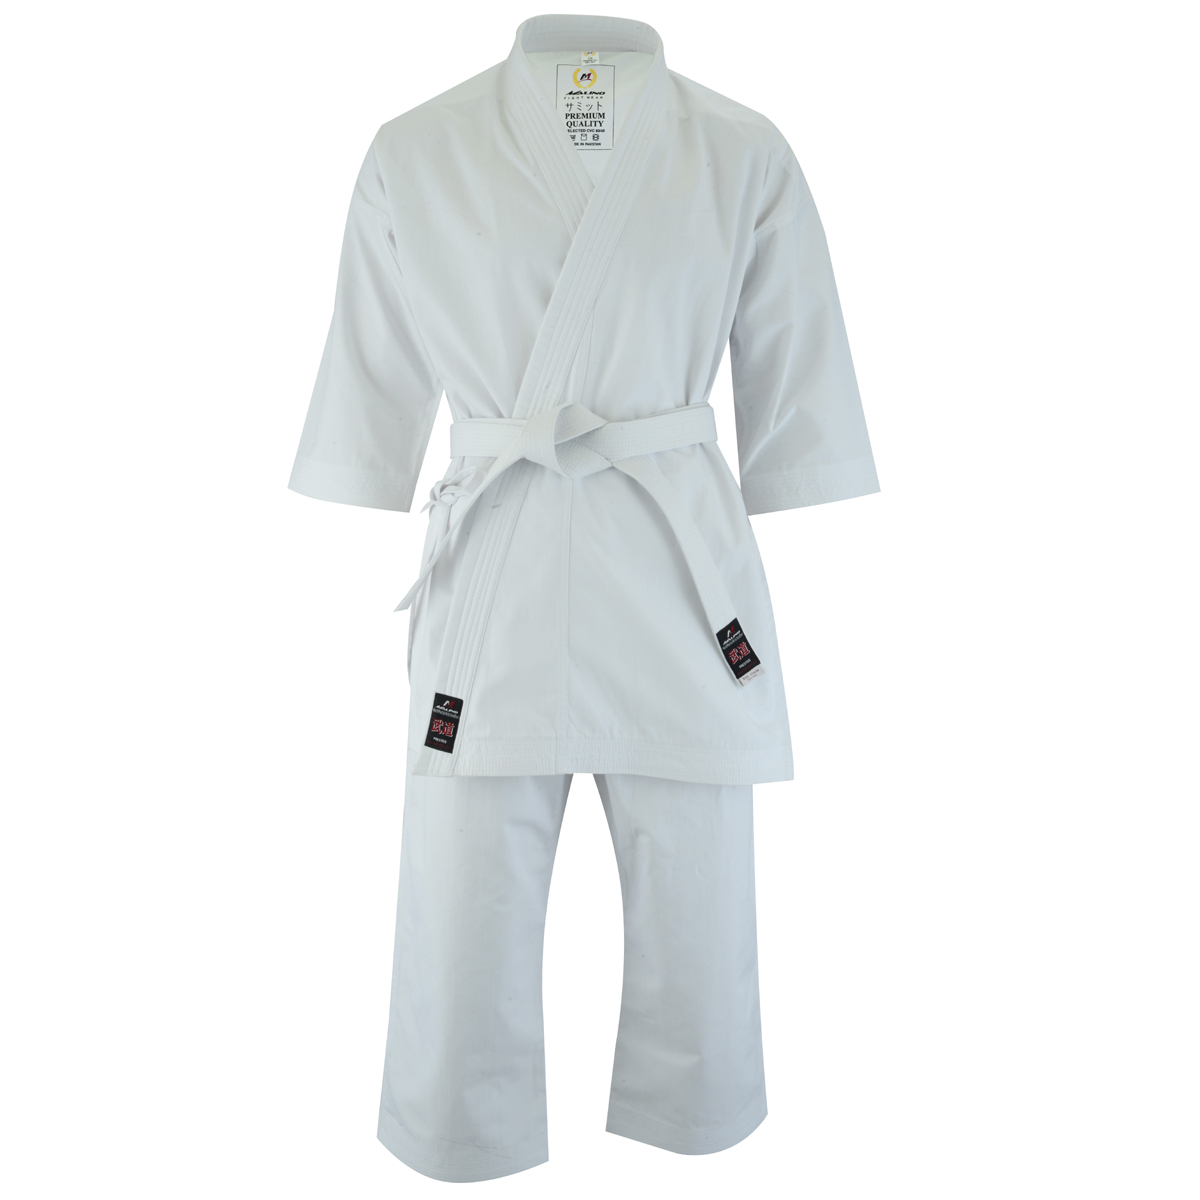 Premium Samito Karate Suit Adult White - 10oz